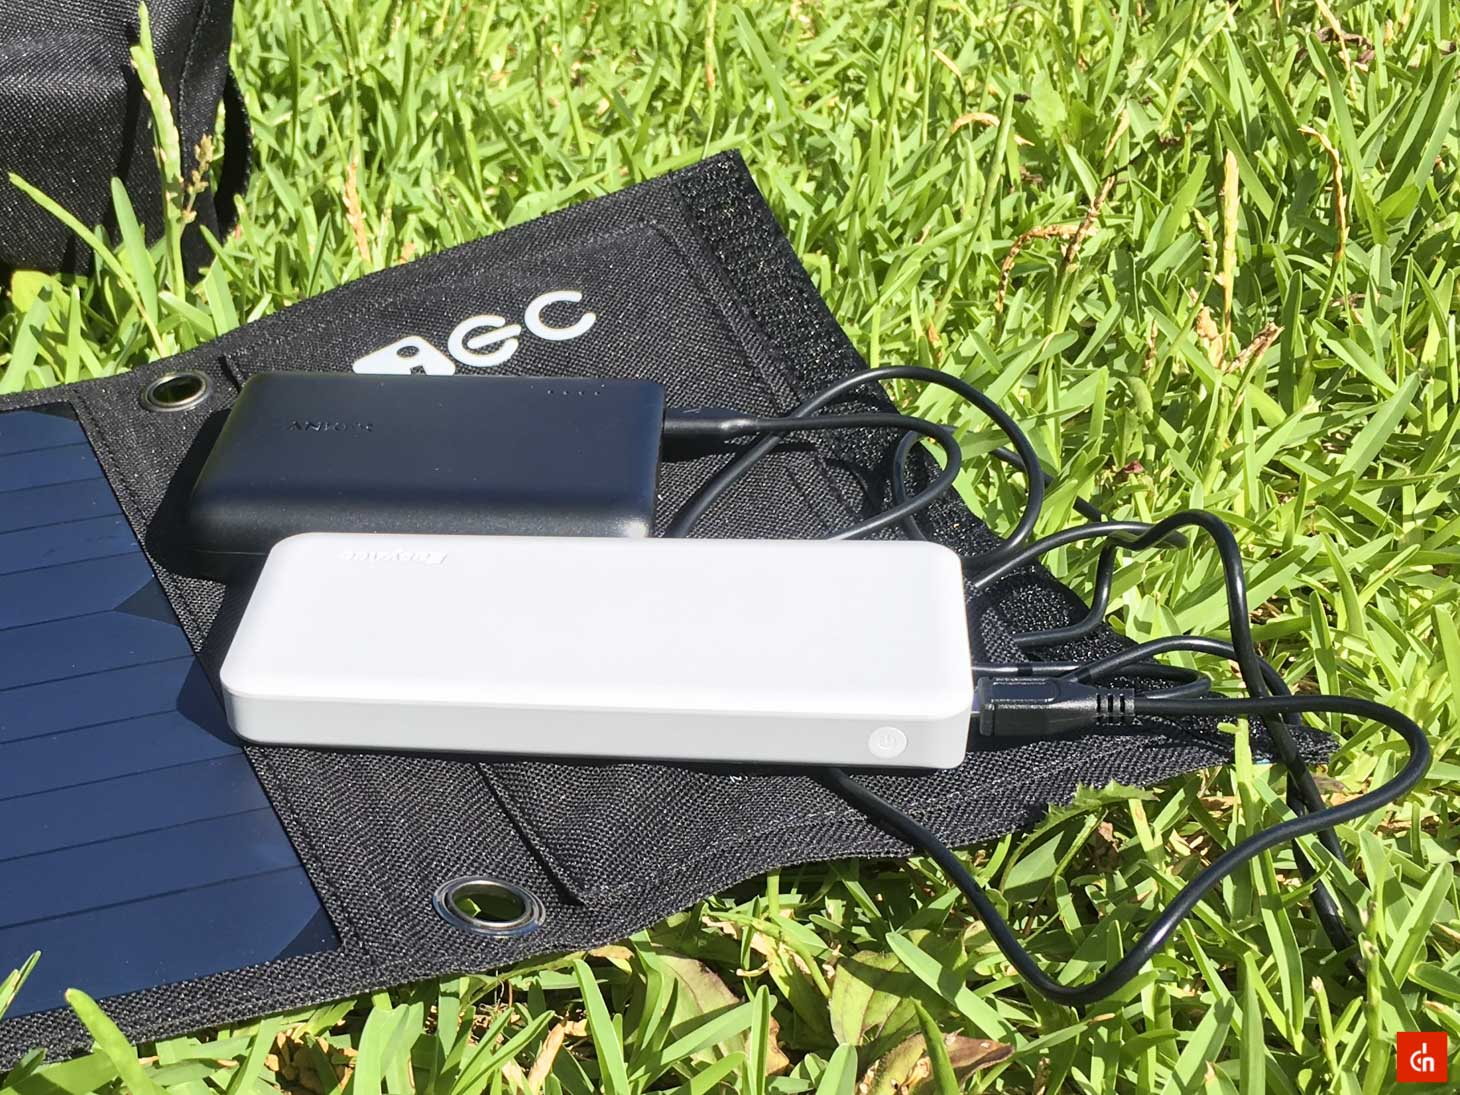 026_20160618_iec-solar-charger